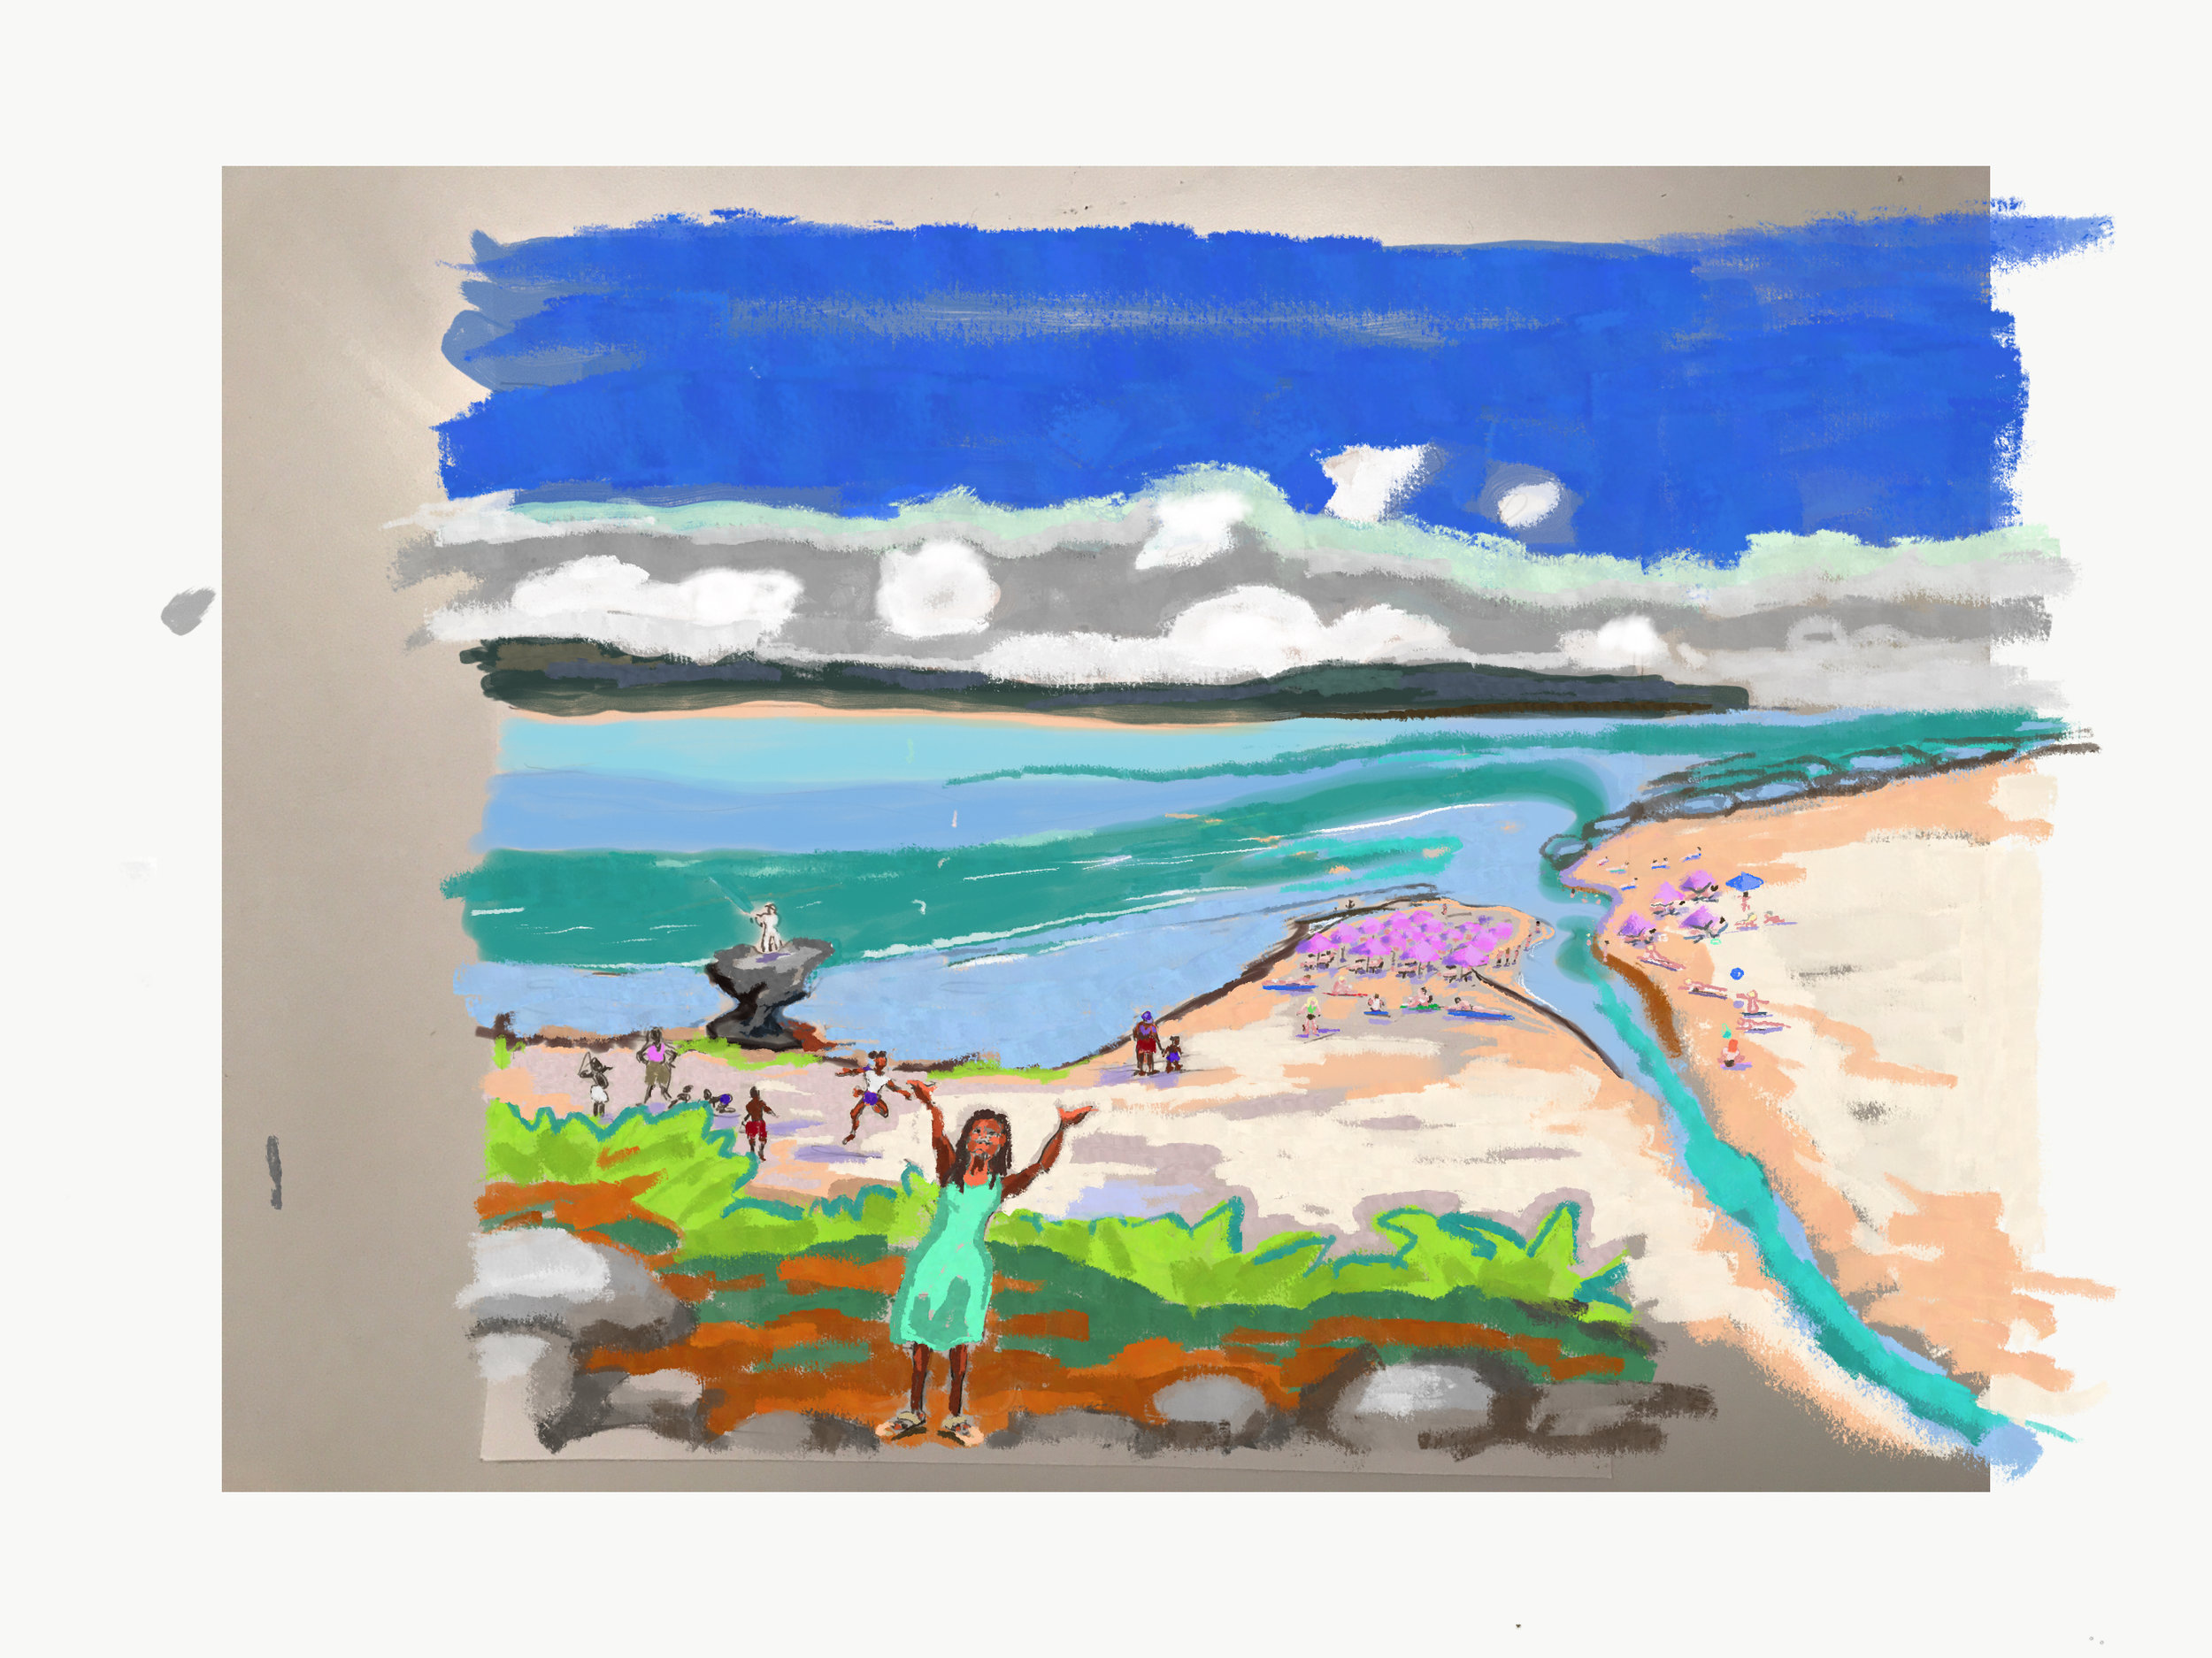 Lindy's Mural Design of a segregated beach area during Apartheid known as Pulpit Rock